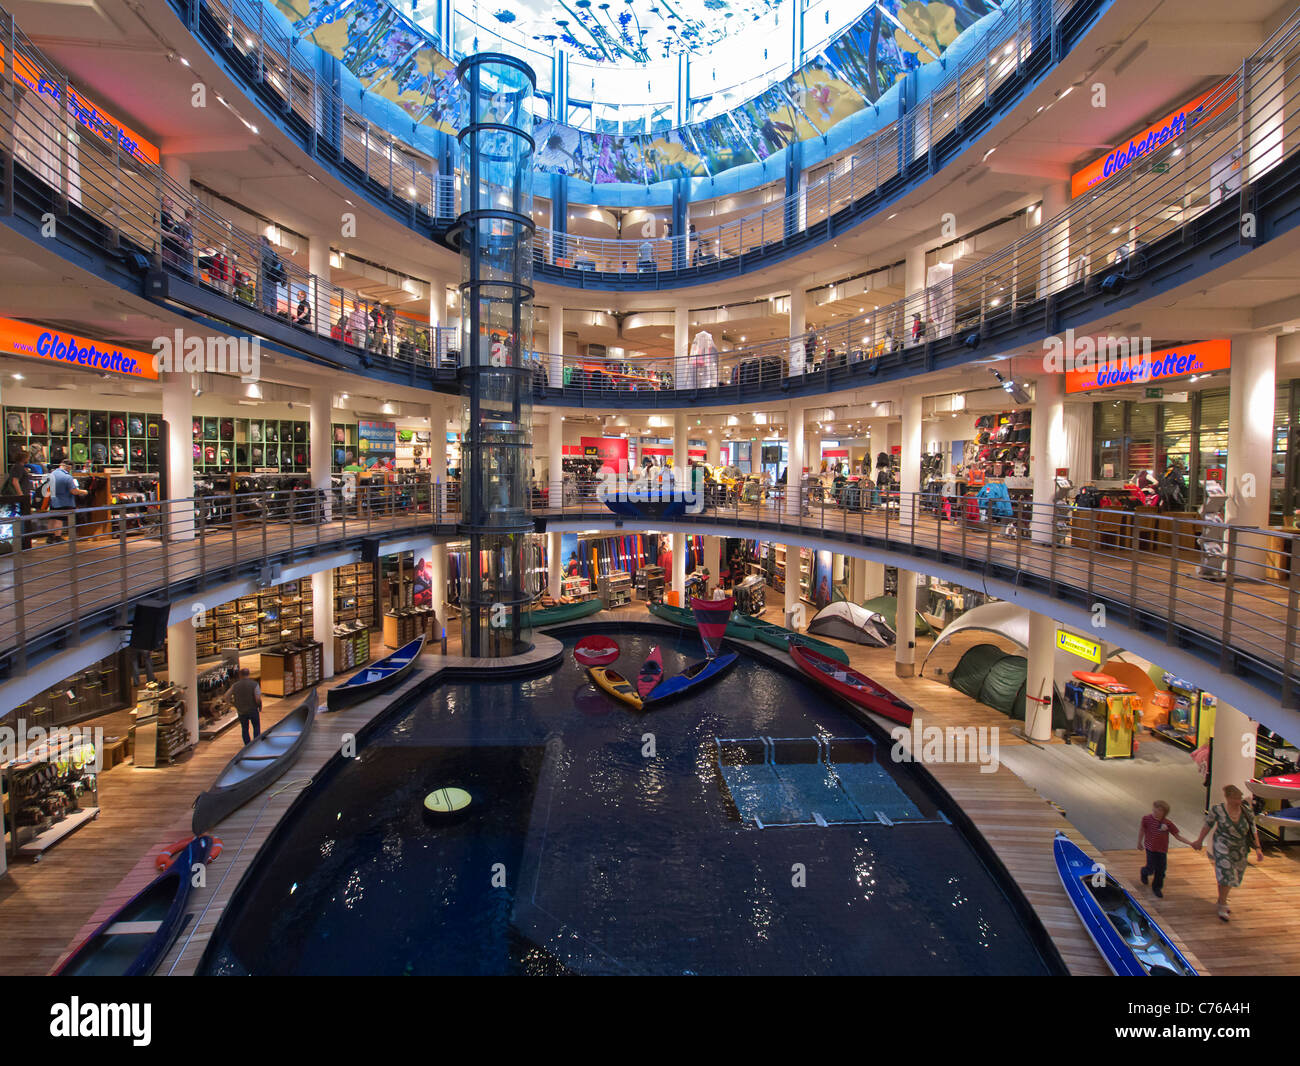 large atrium with pool for testing canoes and kayaks in globetrotter stock photo royalty free. Black Bedroom Furniture Sets. Home Design Ideas